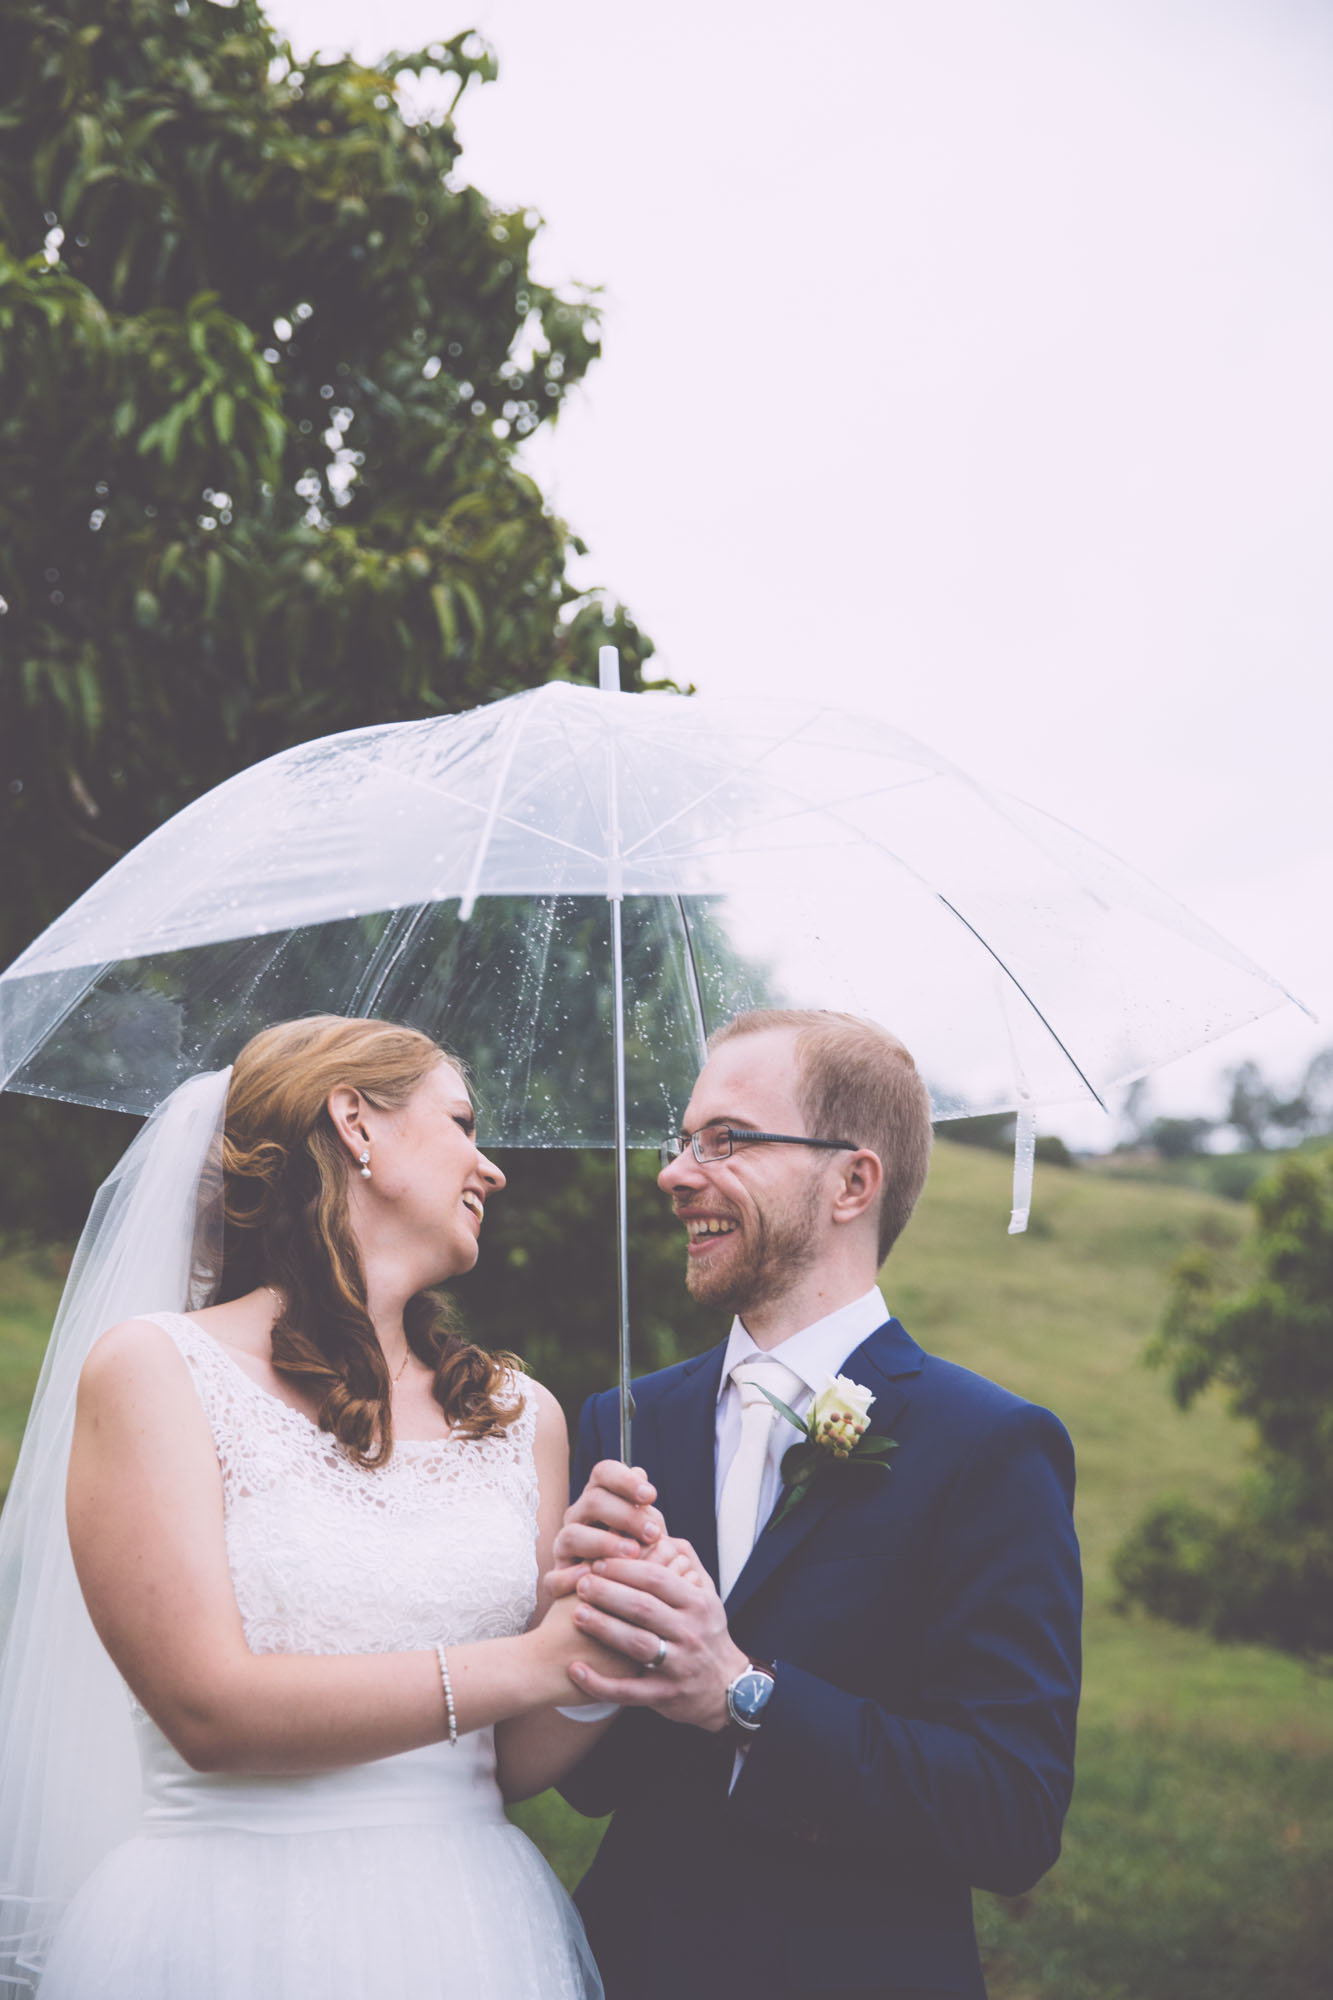 Rainy Wedding Day Photographs Anna Osetroff Laidley